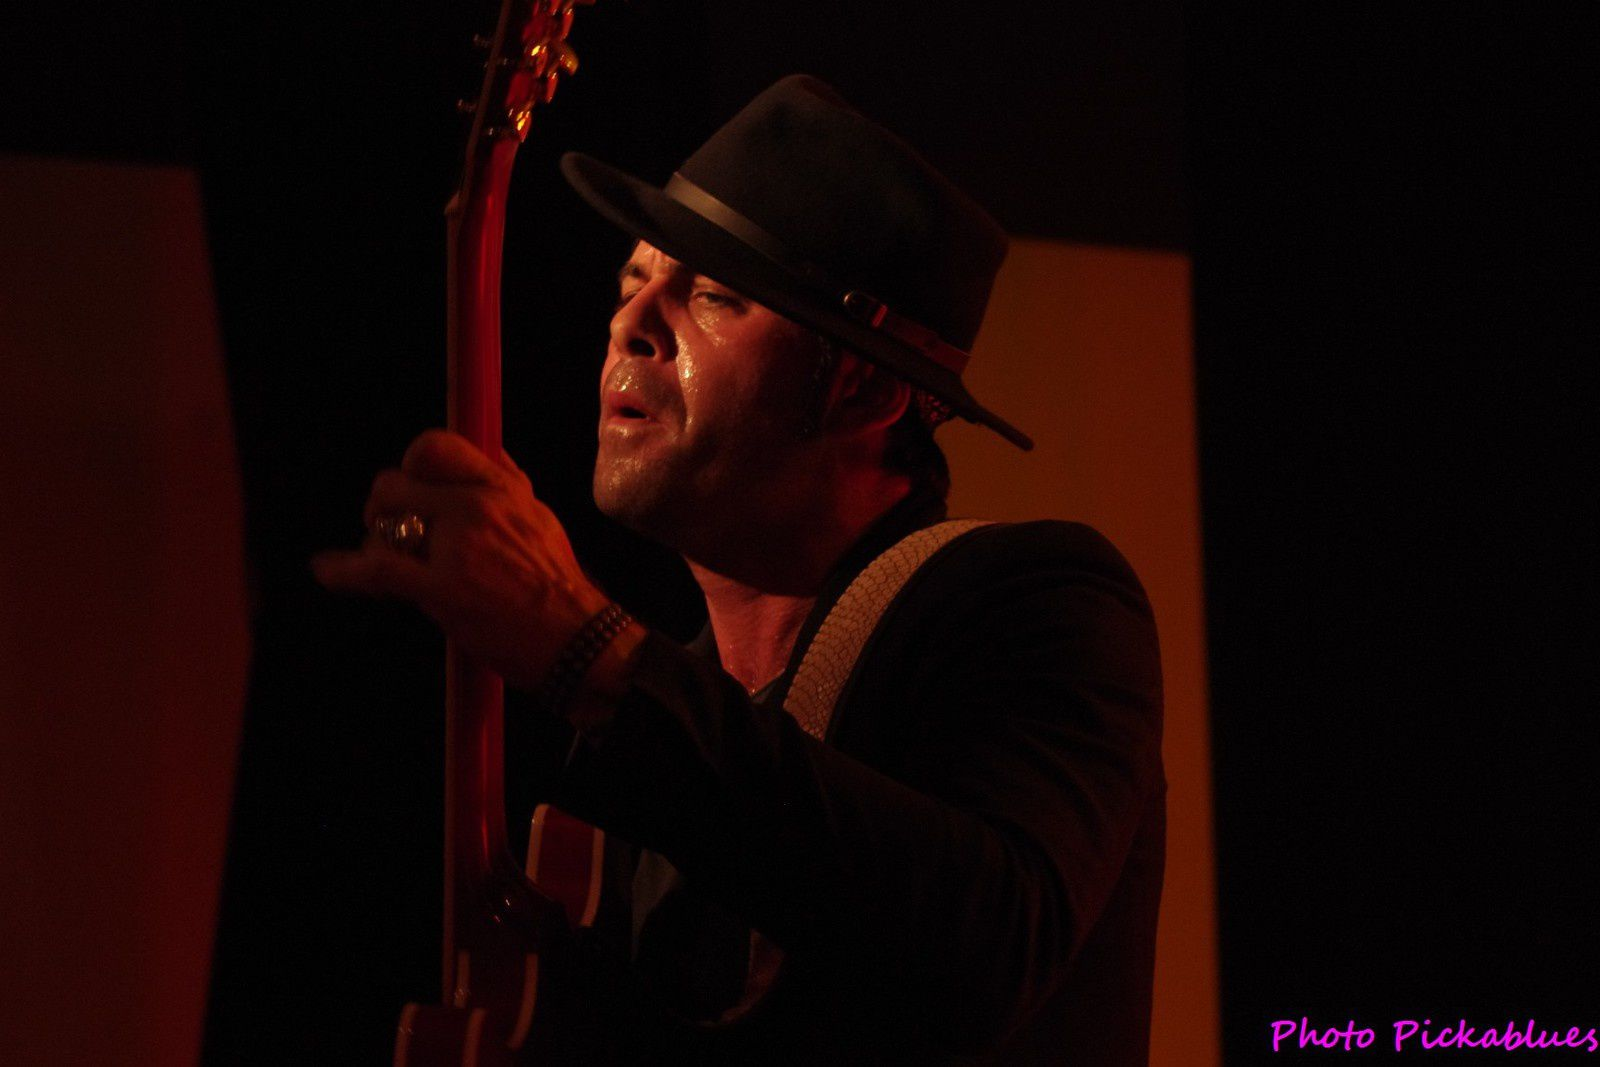 Manu Lanvin & The Devil Blues - 19 septembre 2015 - Sequed'un Soir 4, Sequedin (59)